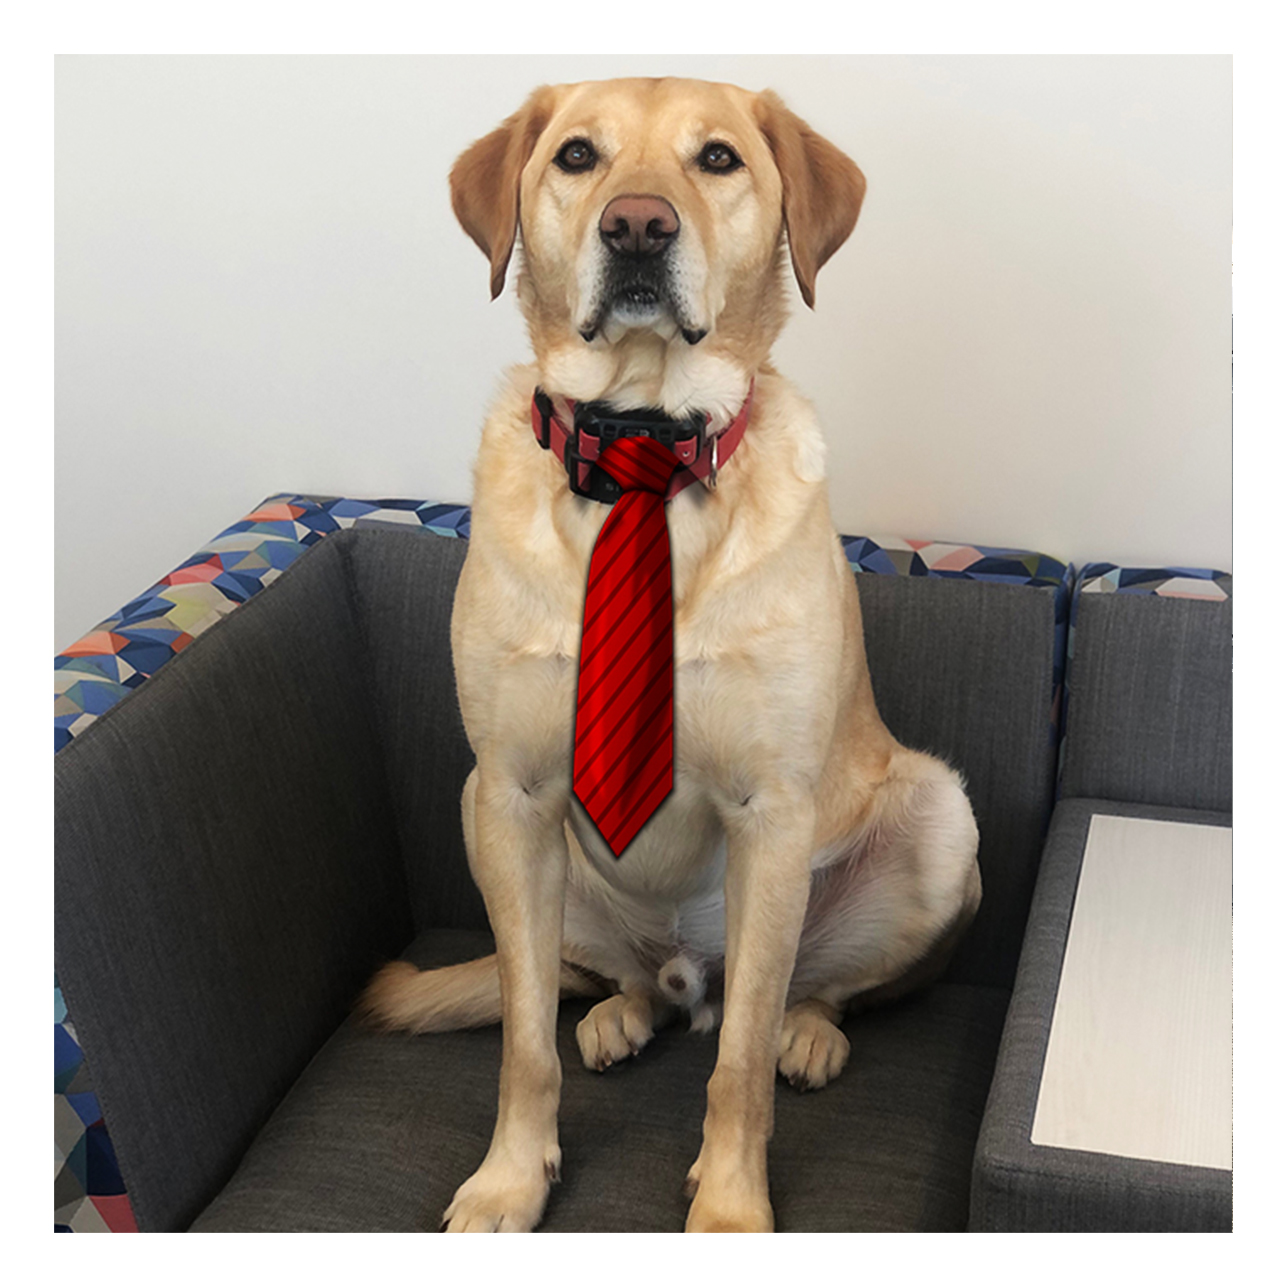 Rocco with tie